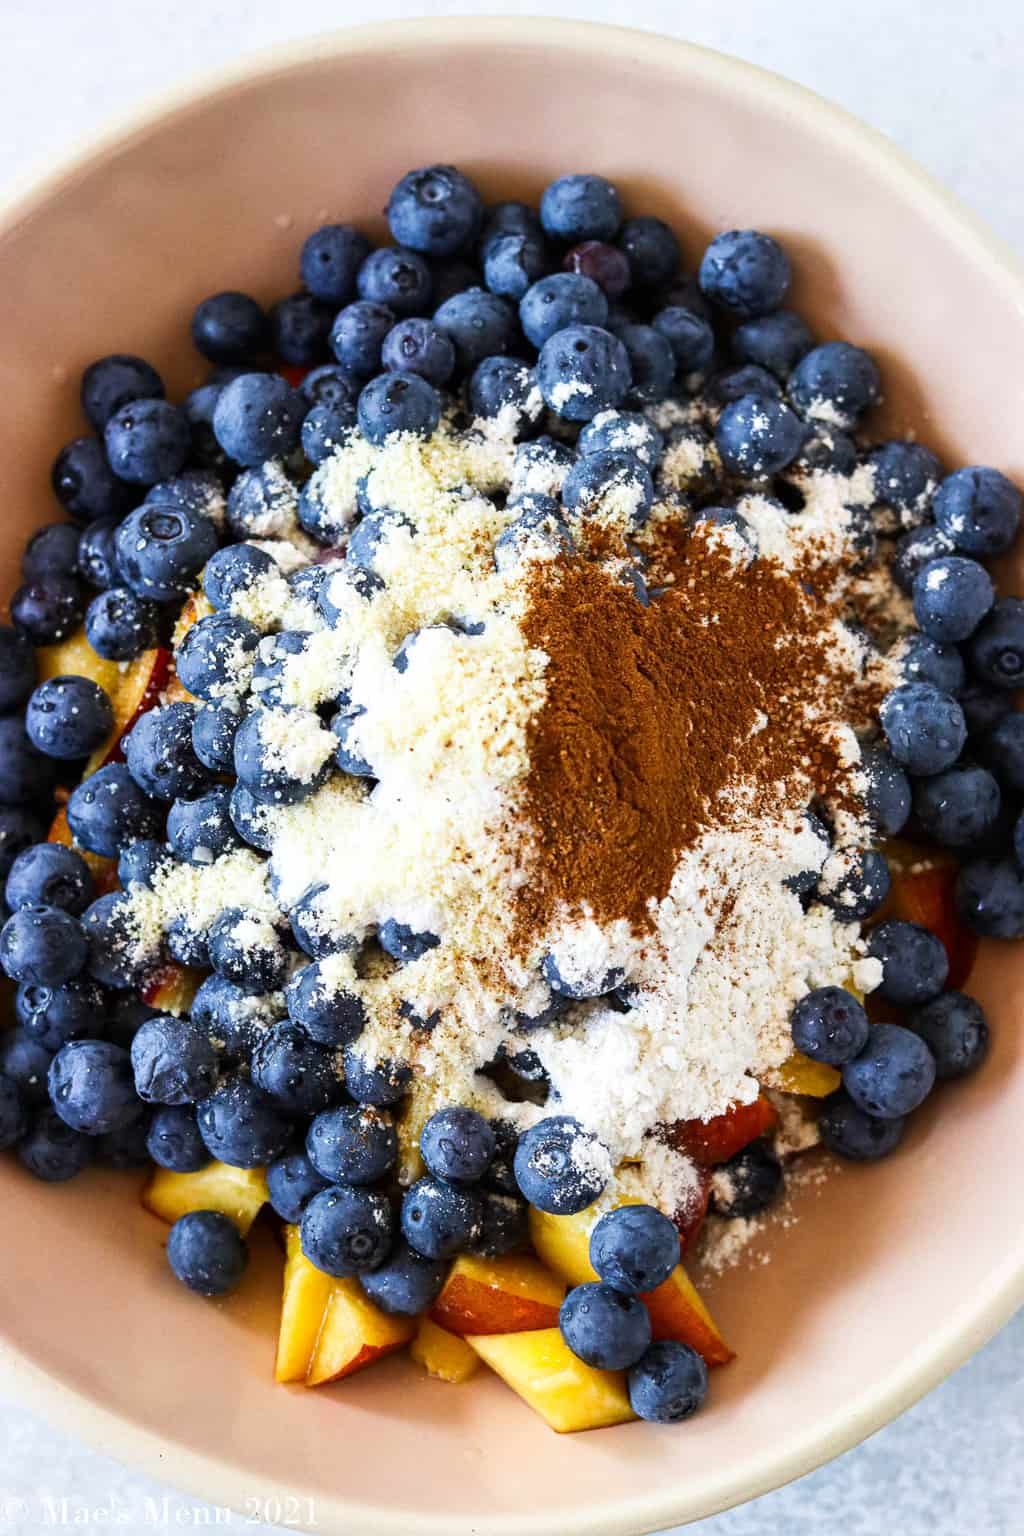 Blueberries and peaches covered with flour and spices